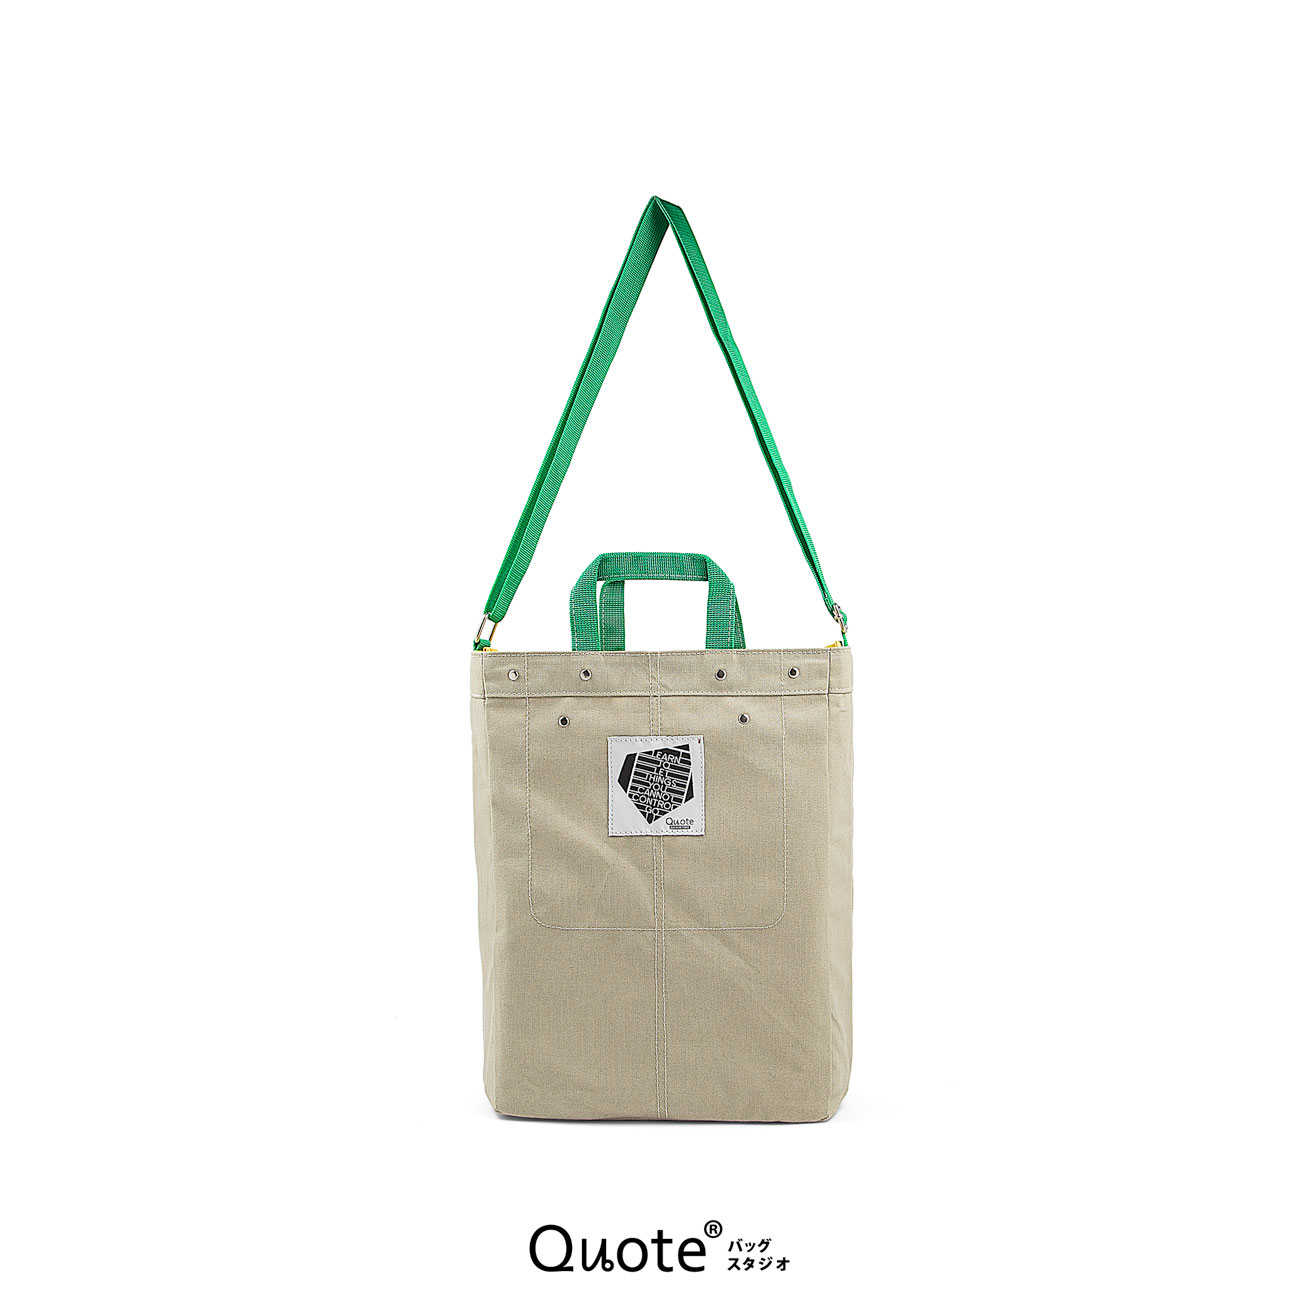 Coss-over bag # M Grey/Green  || クロスボディバッグ